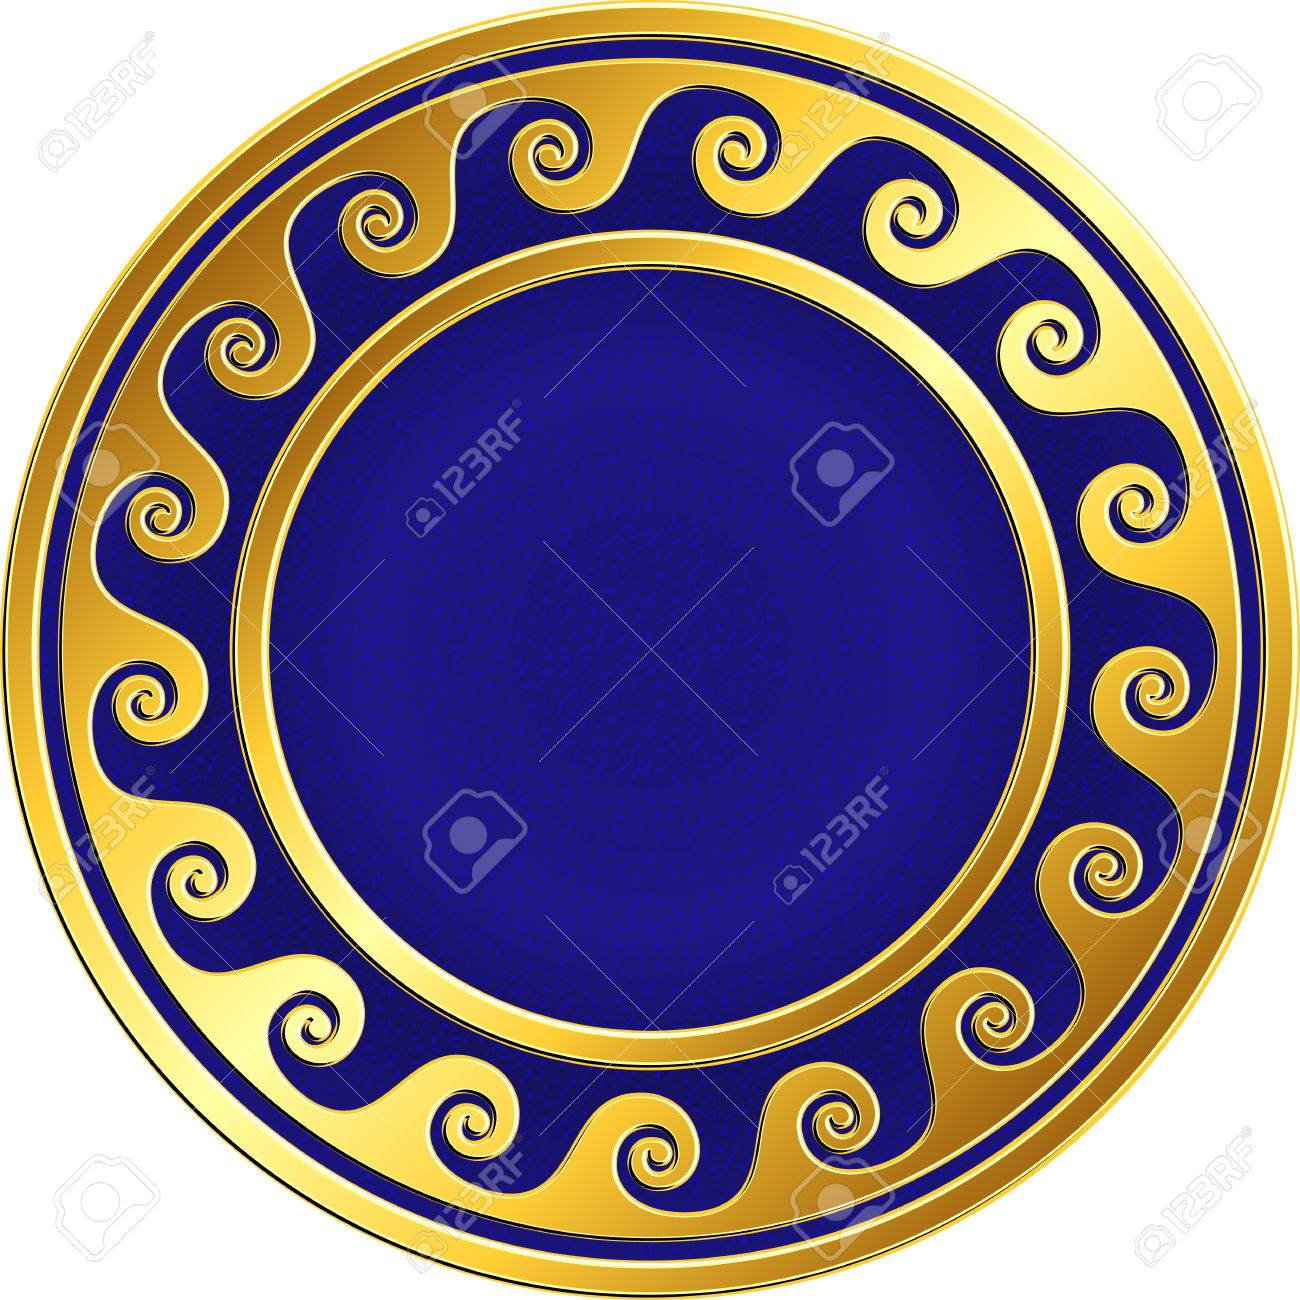 bd699e416a8a Golden round frame with traditional vintage Greek Meander pattern on the  blue background for design template. Gold pattern for decorative tiles and  plates ...